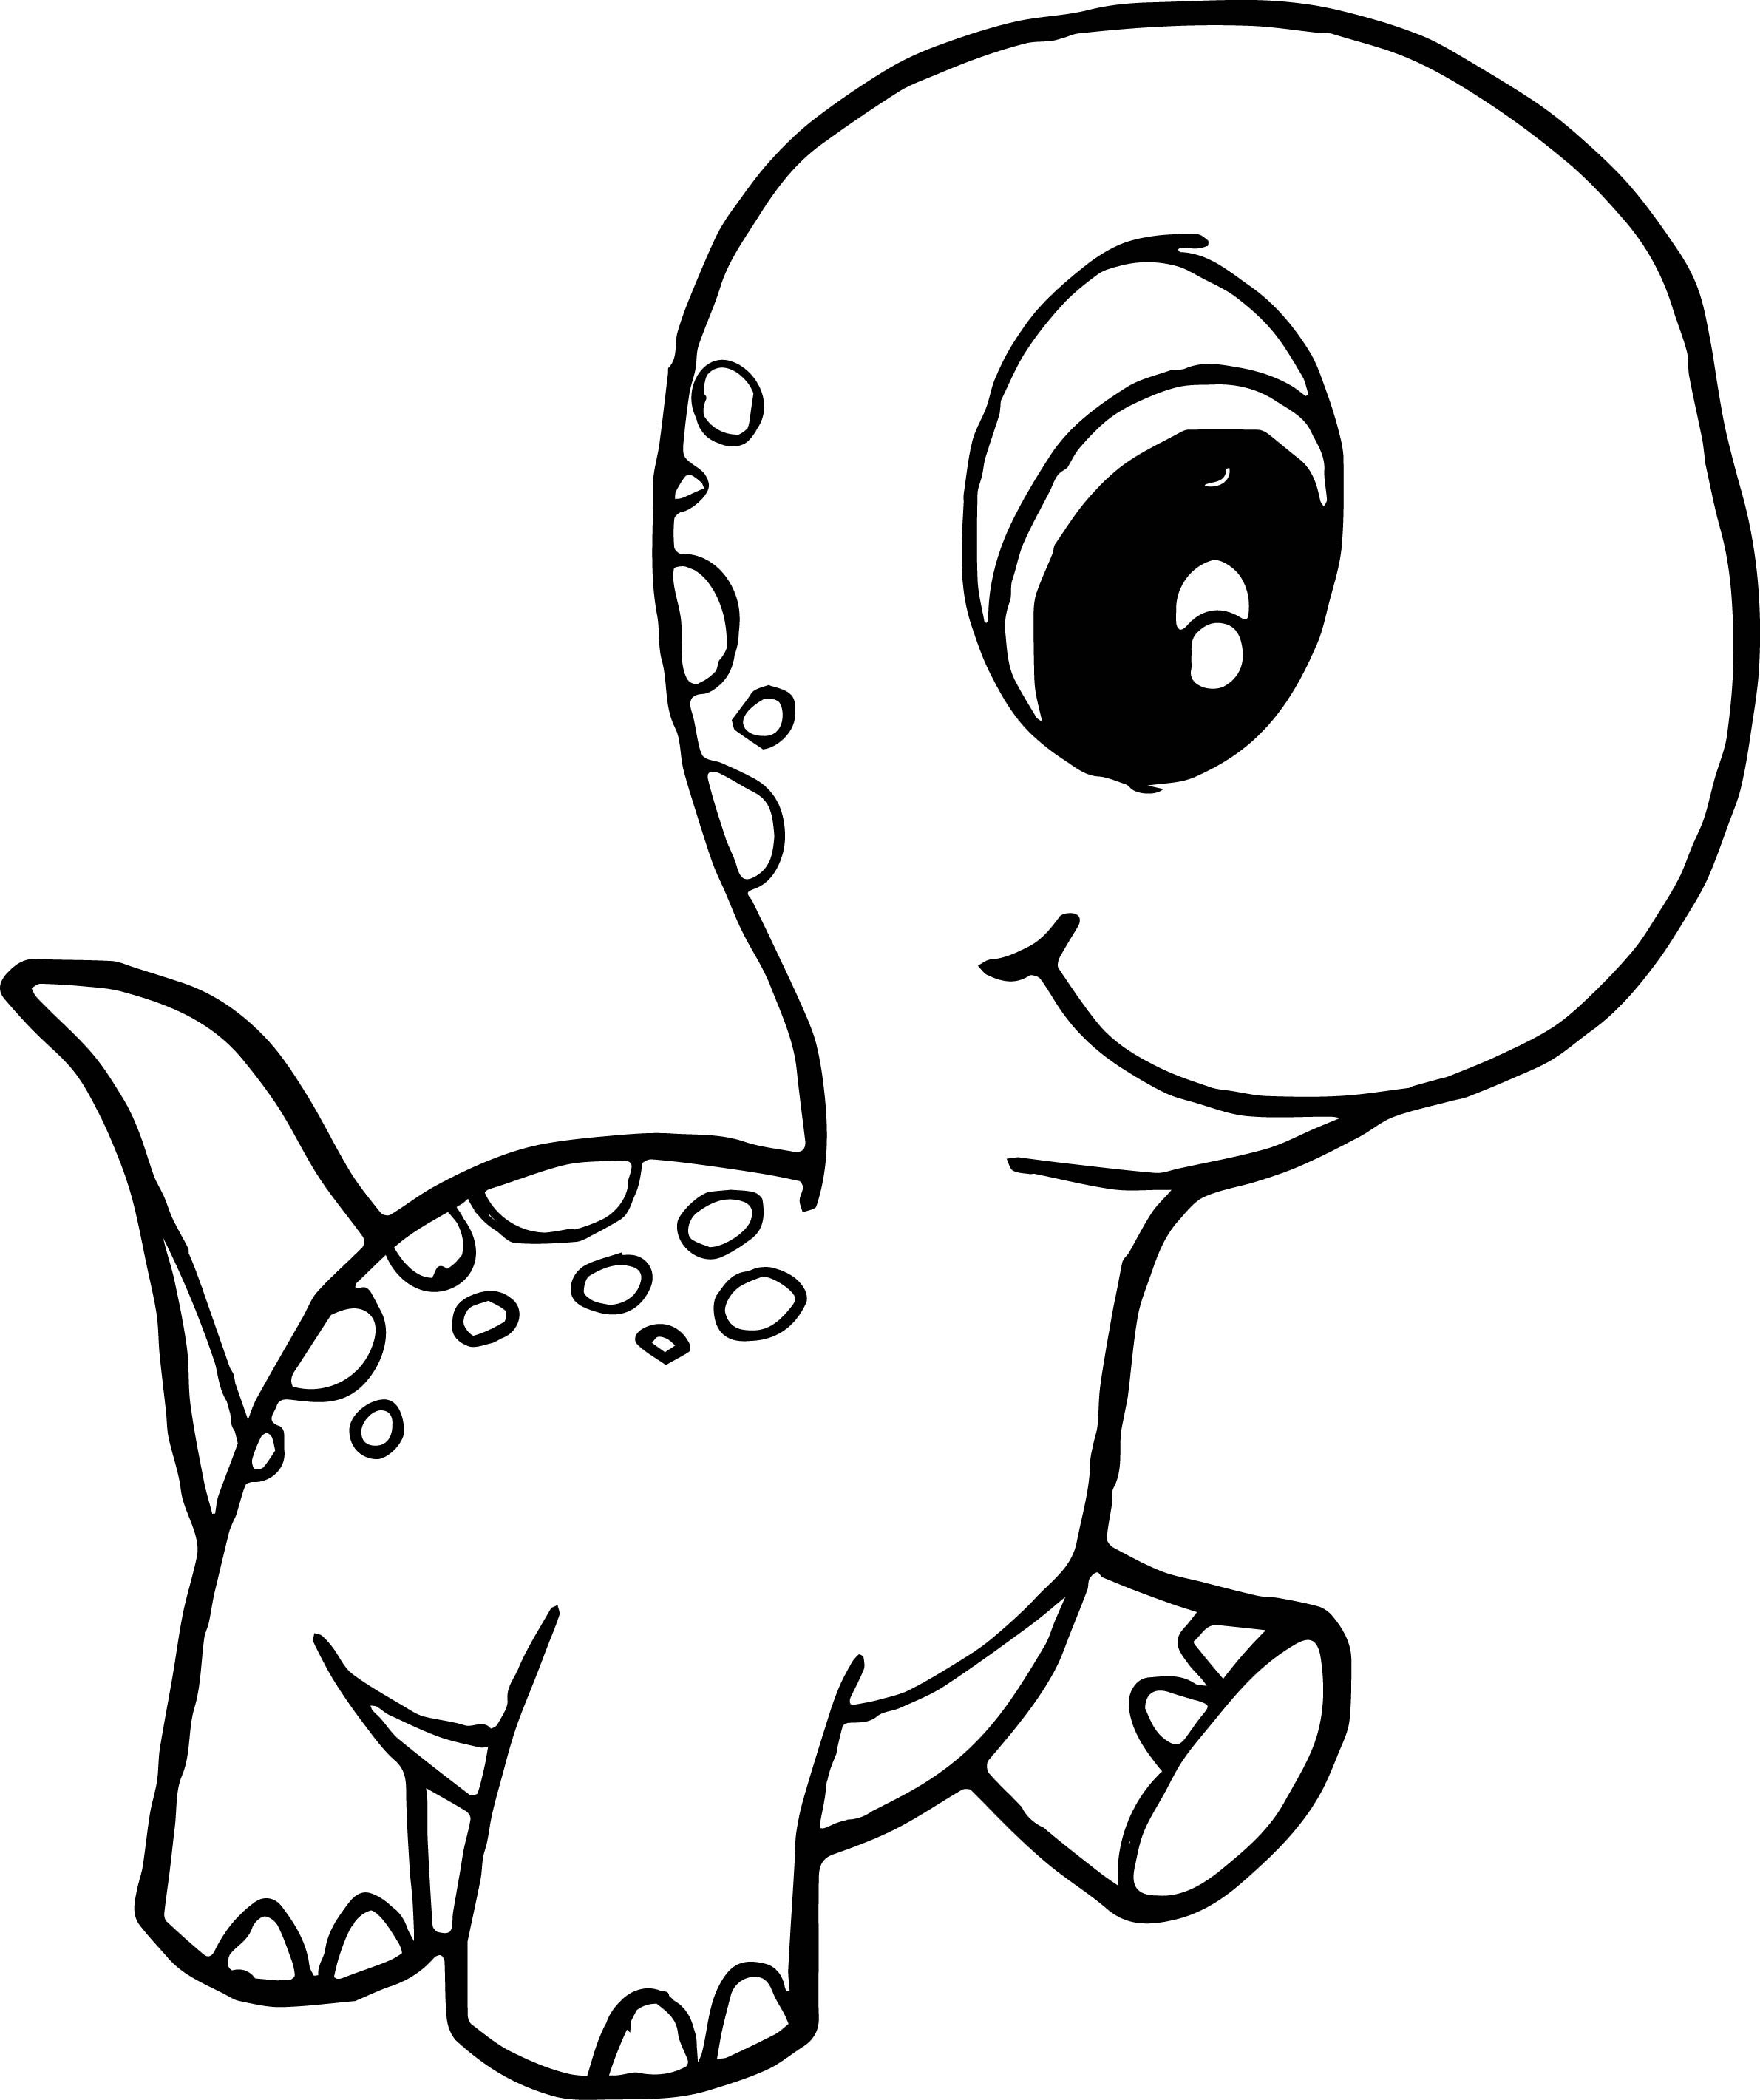 Baby Dinosaur Drawing | Free download on ClipArtMag